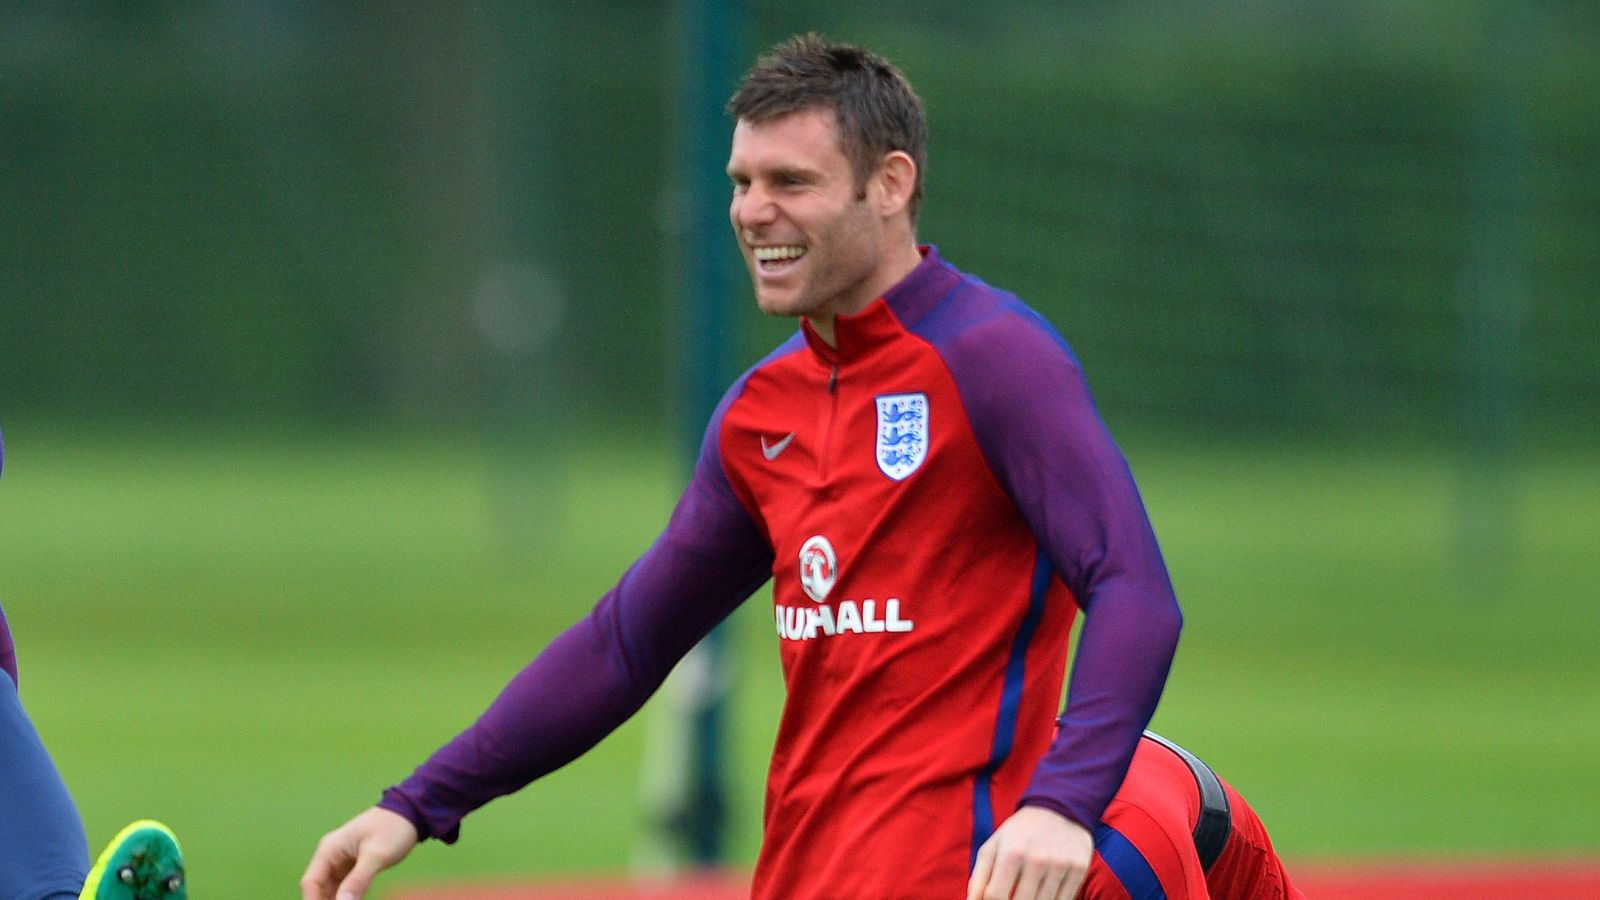 Milner sits above Bale, Pogba and Kroos in UEFA rankings tool